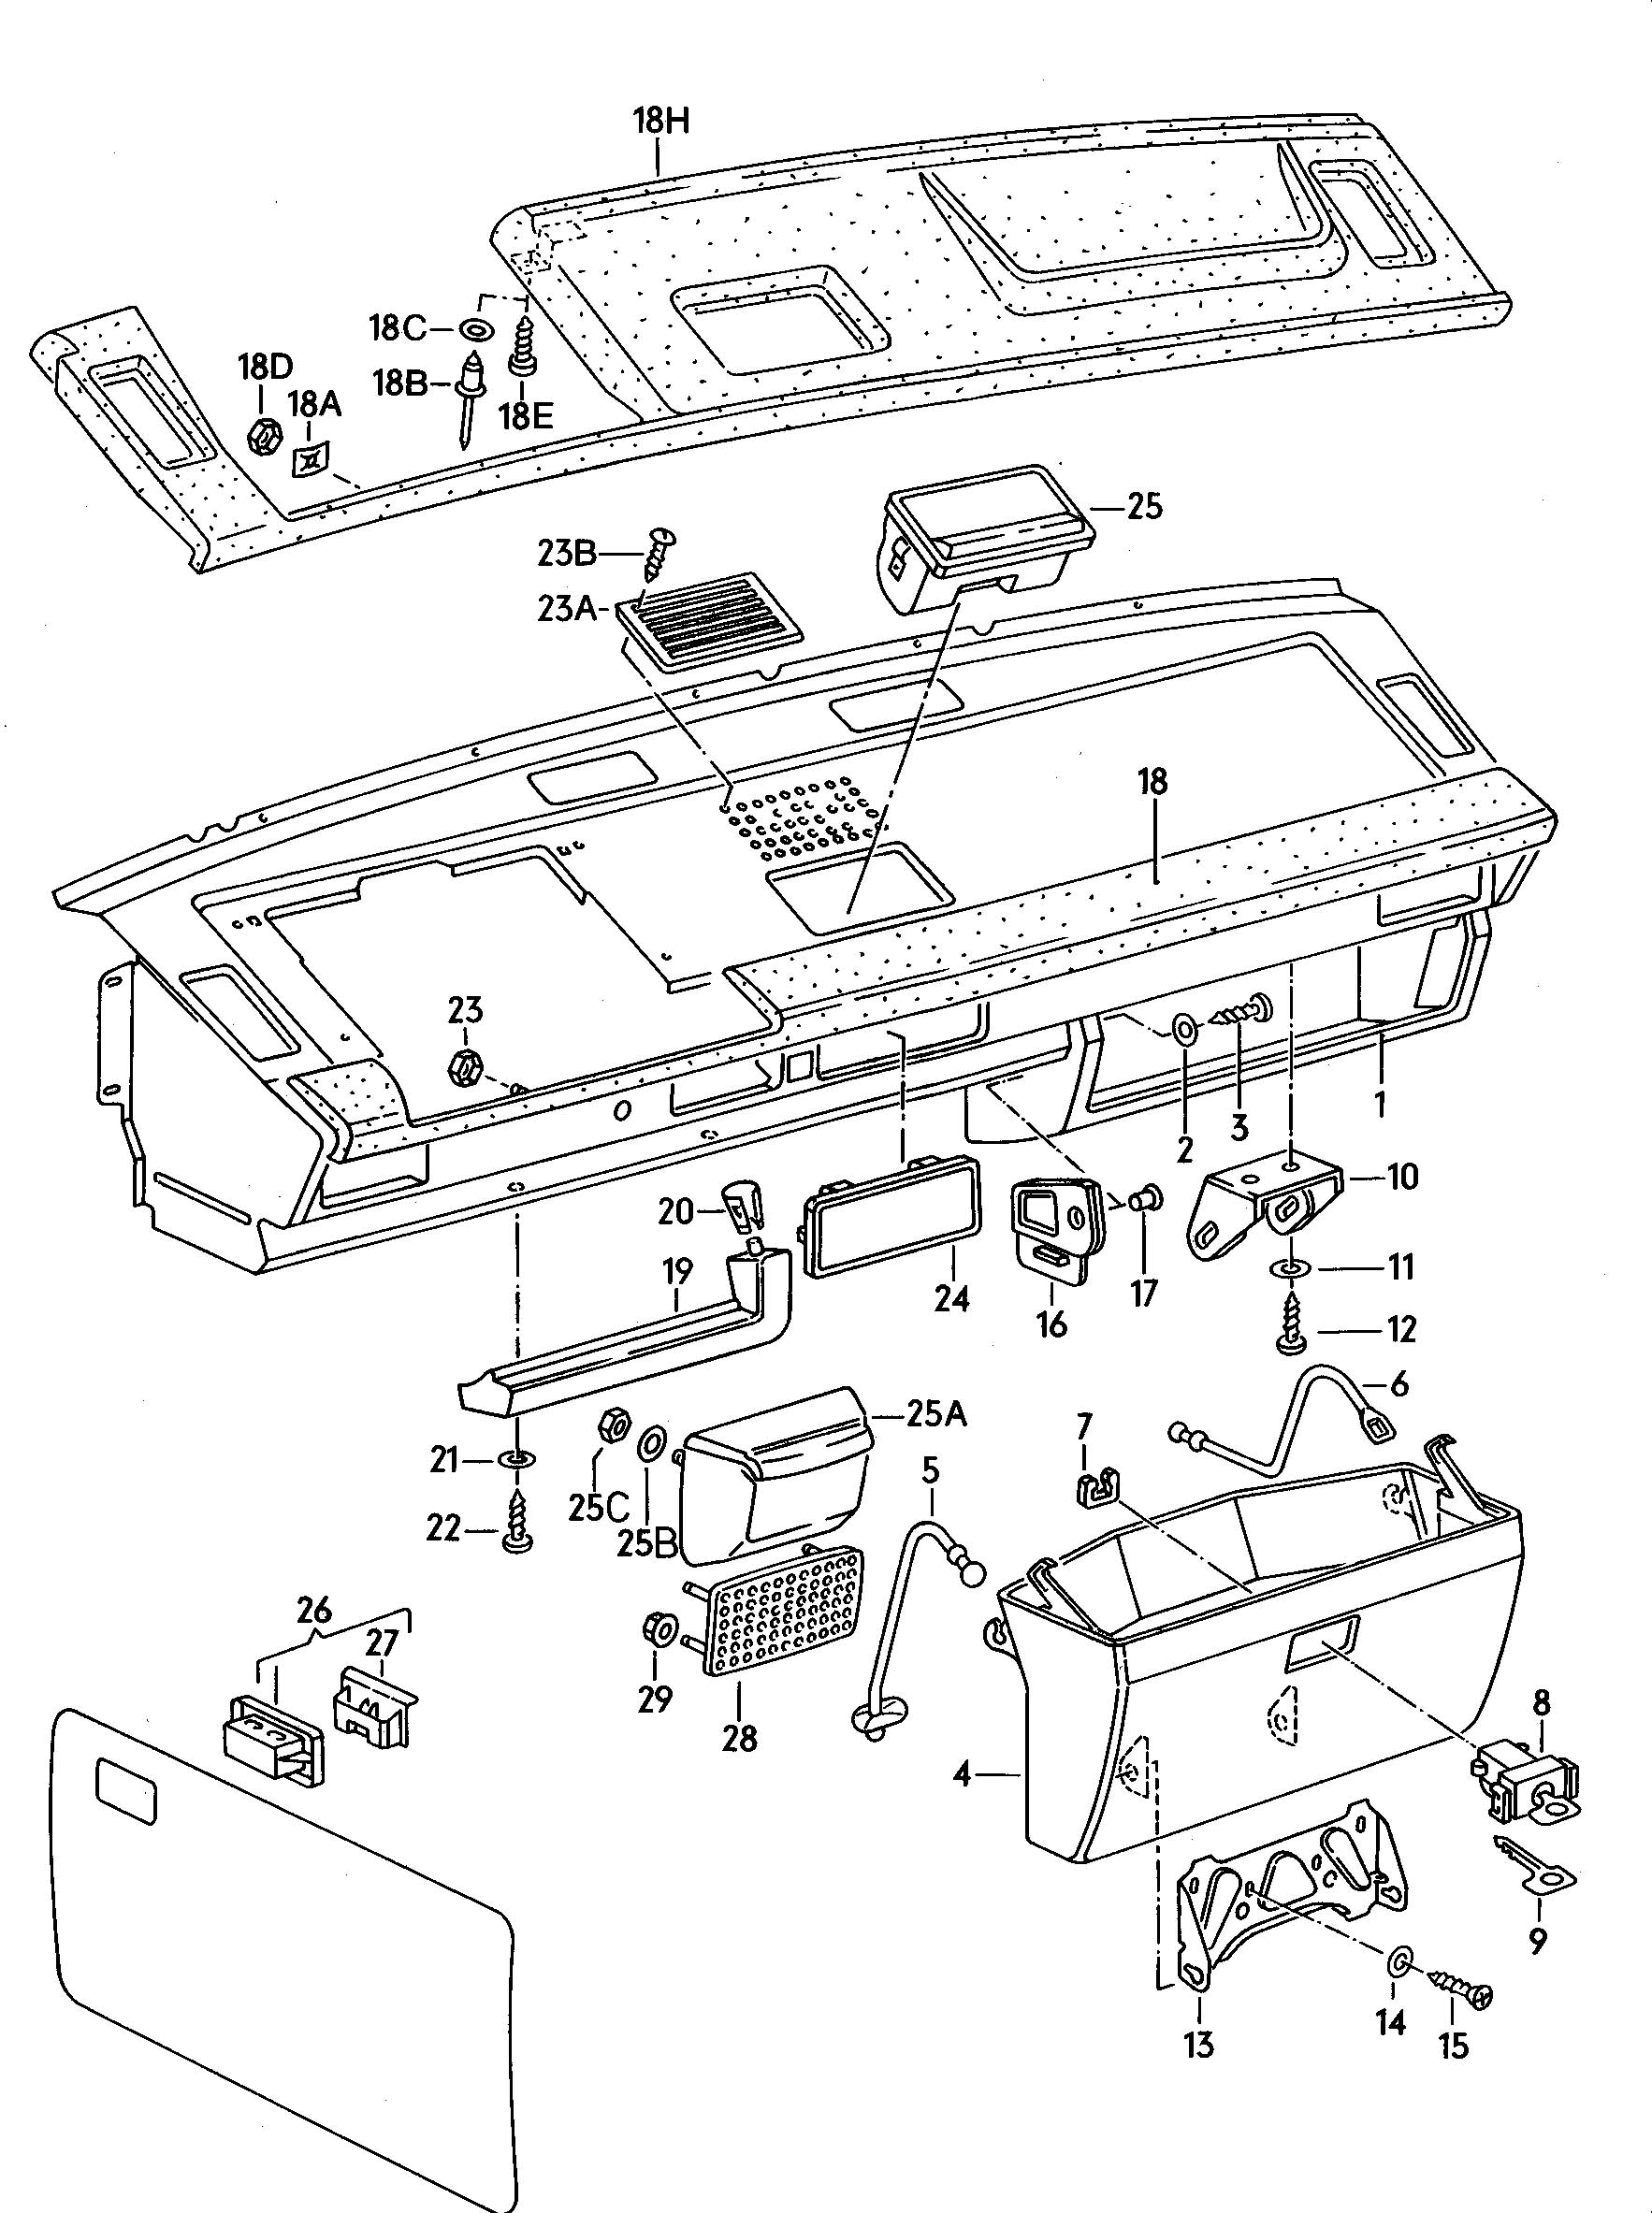 Service manual [Installation Of Rear Ashtray For A 1986